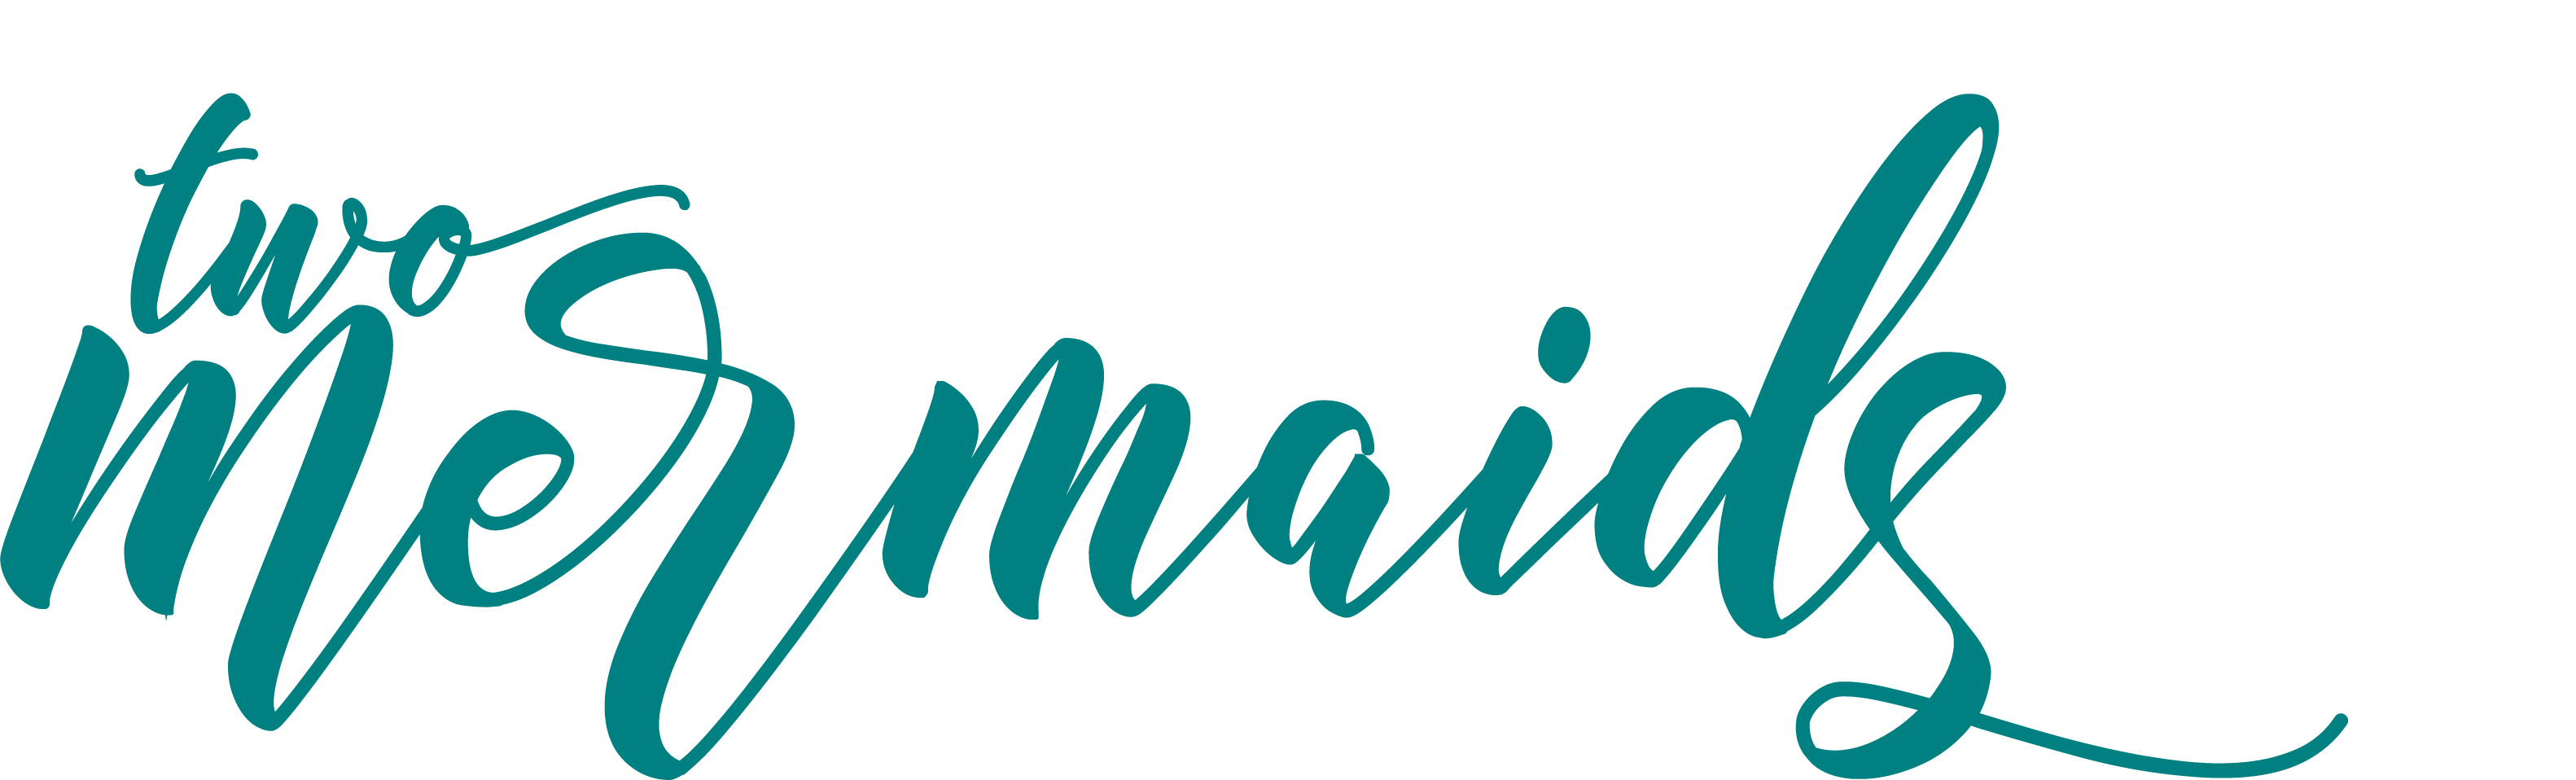 Two Mermaids Resort, Treasure Island, FL